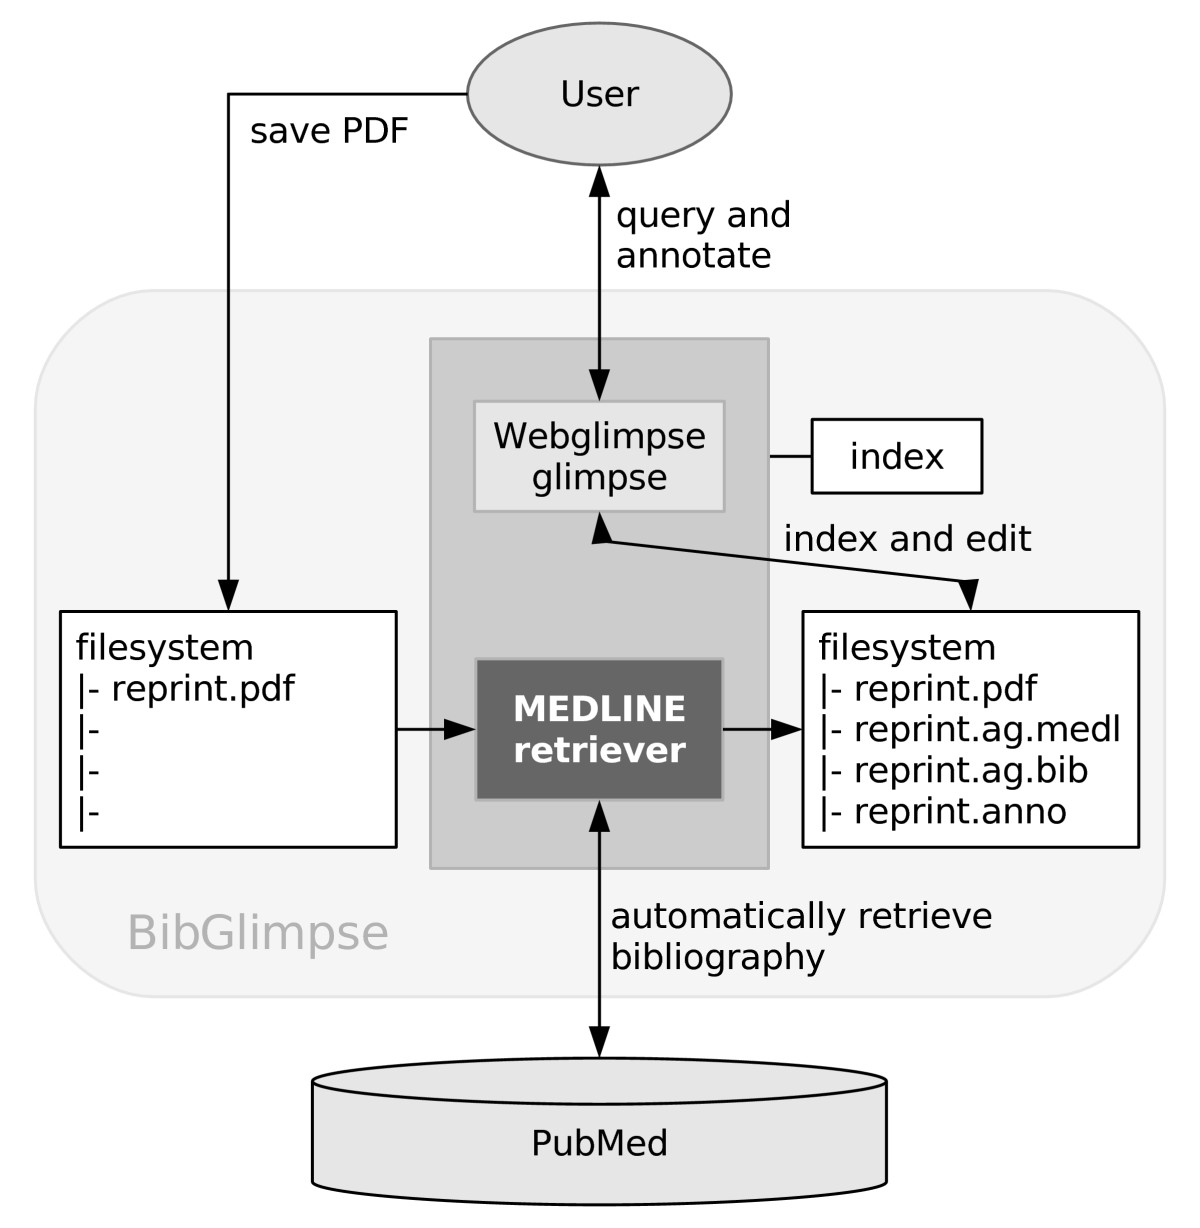 http://static-content.springer.com/image/art%3A10.1186%2F1471-2105-9-406/MediaObjects/12859_2008_Article_2391_Fig1_HTML.jpg